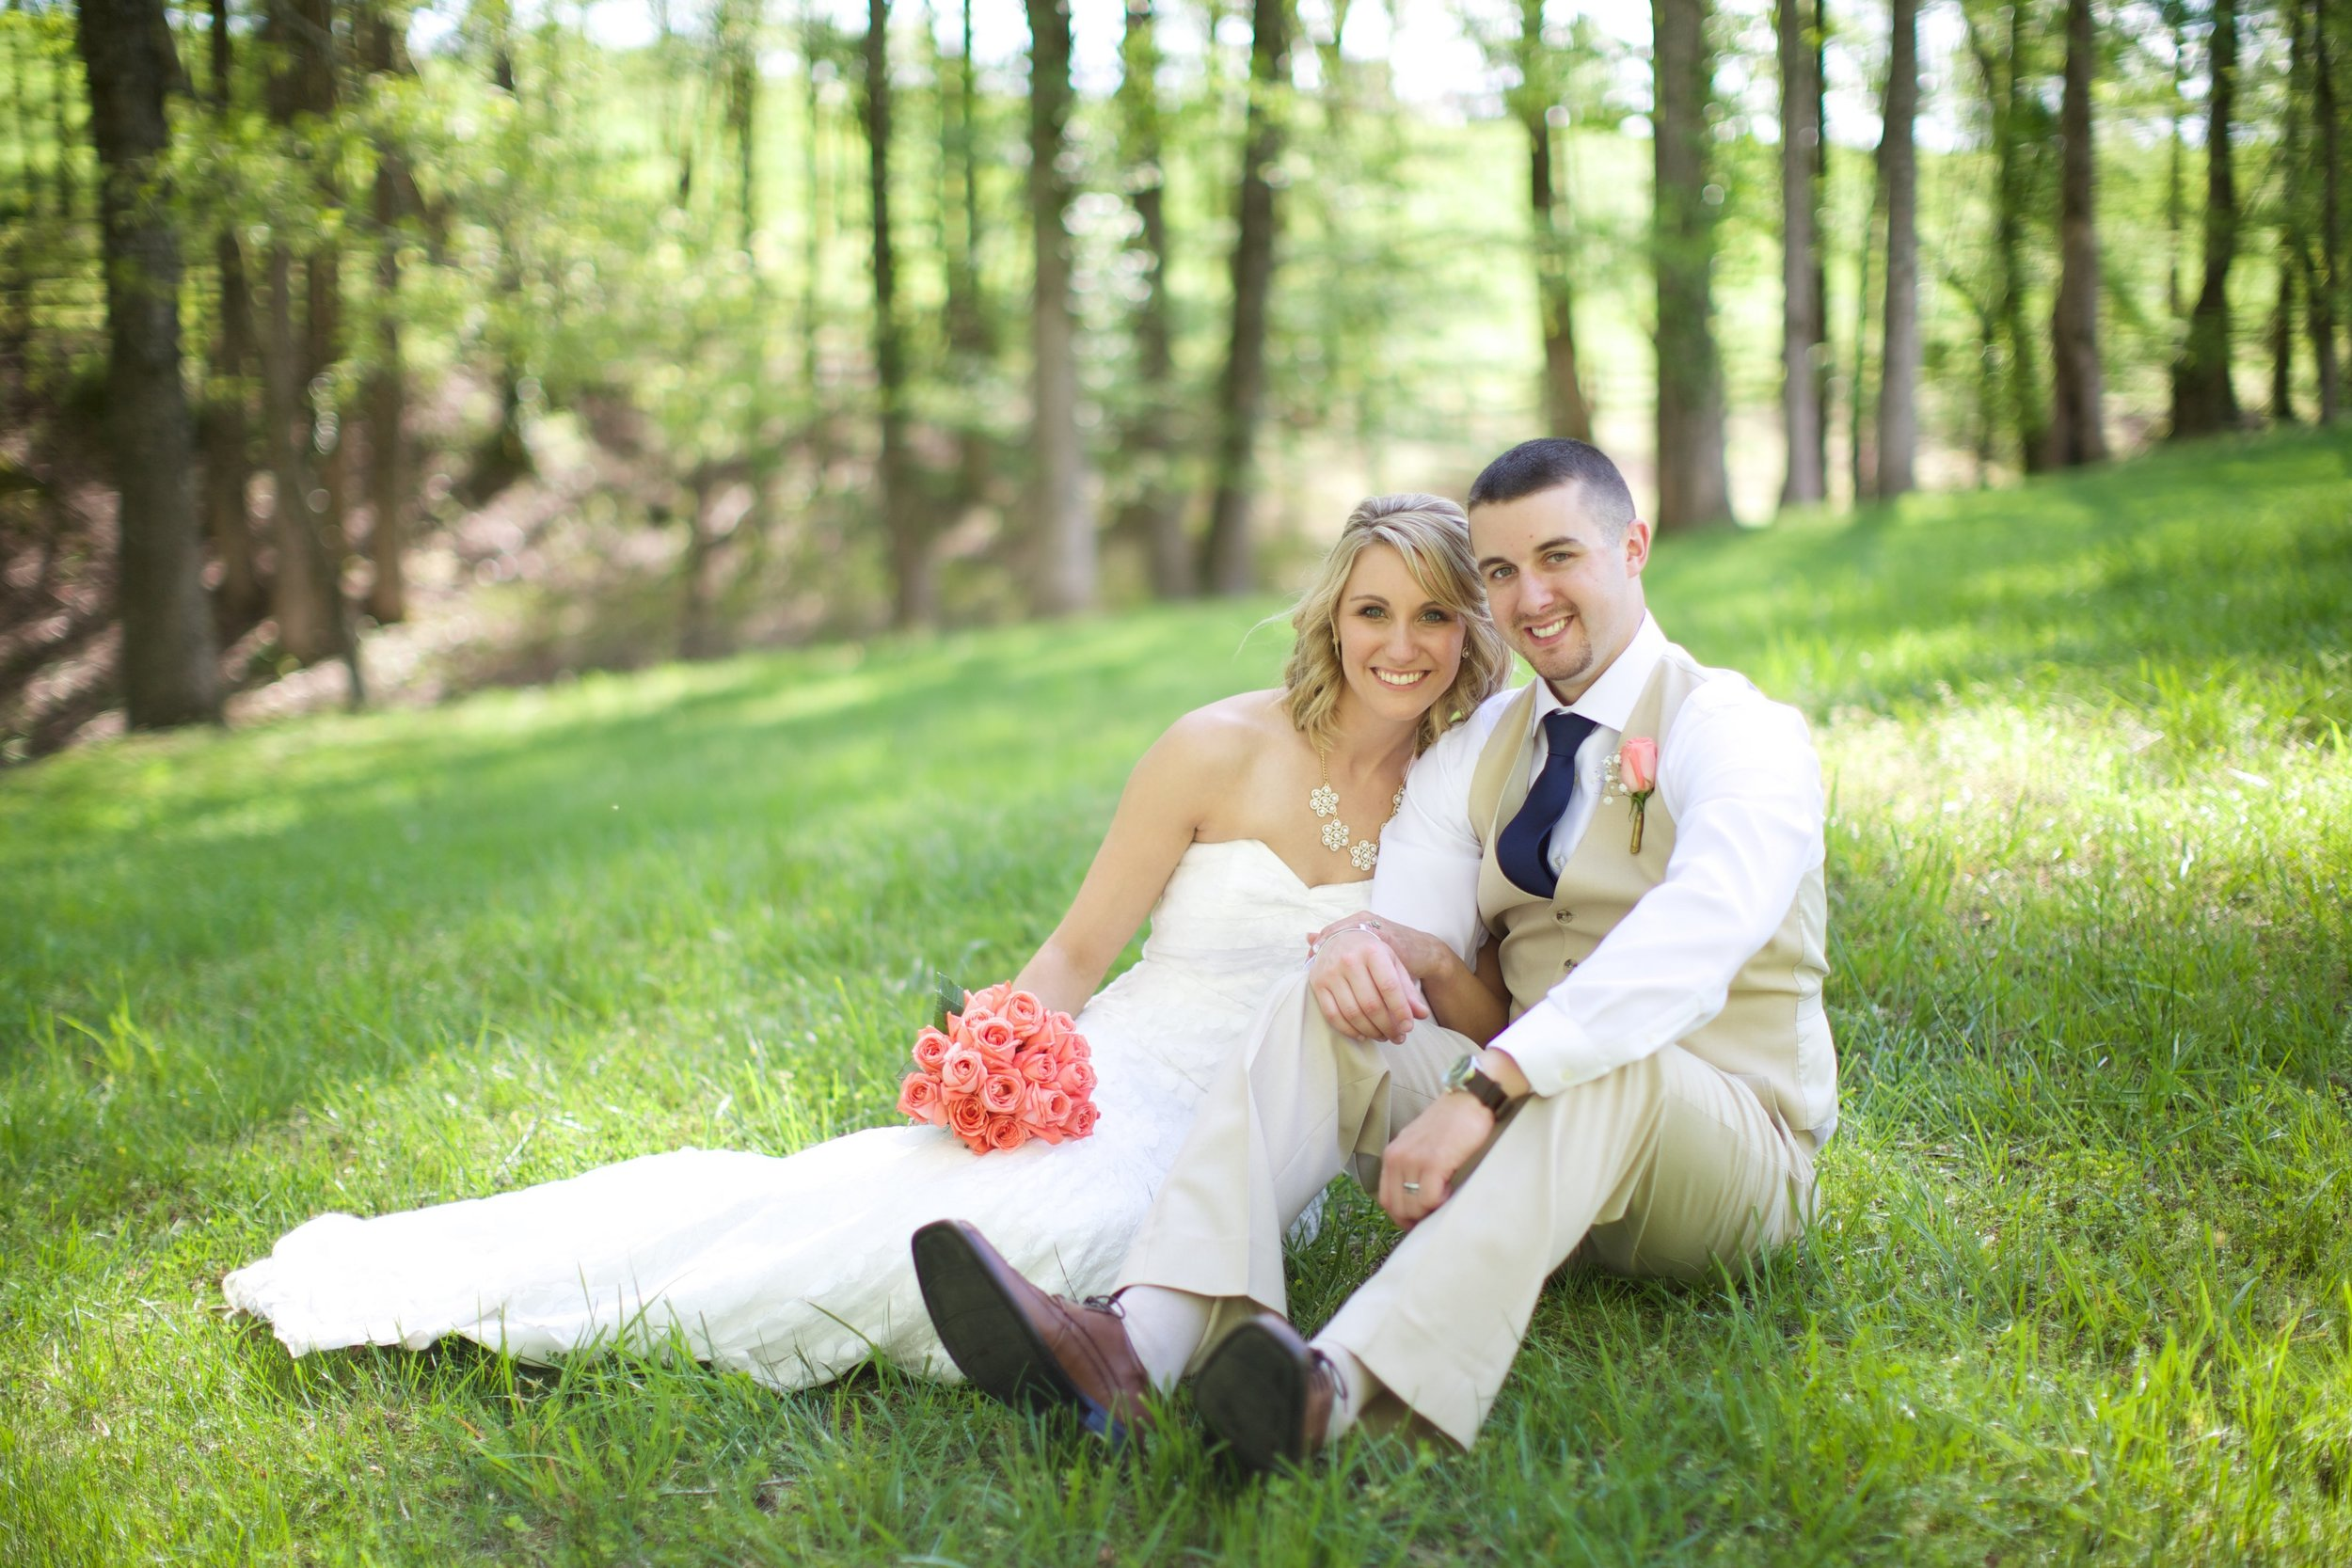 hillaryleahphotography-georgia-wedding.jpg